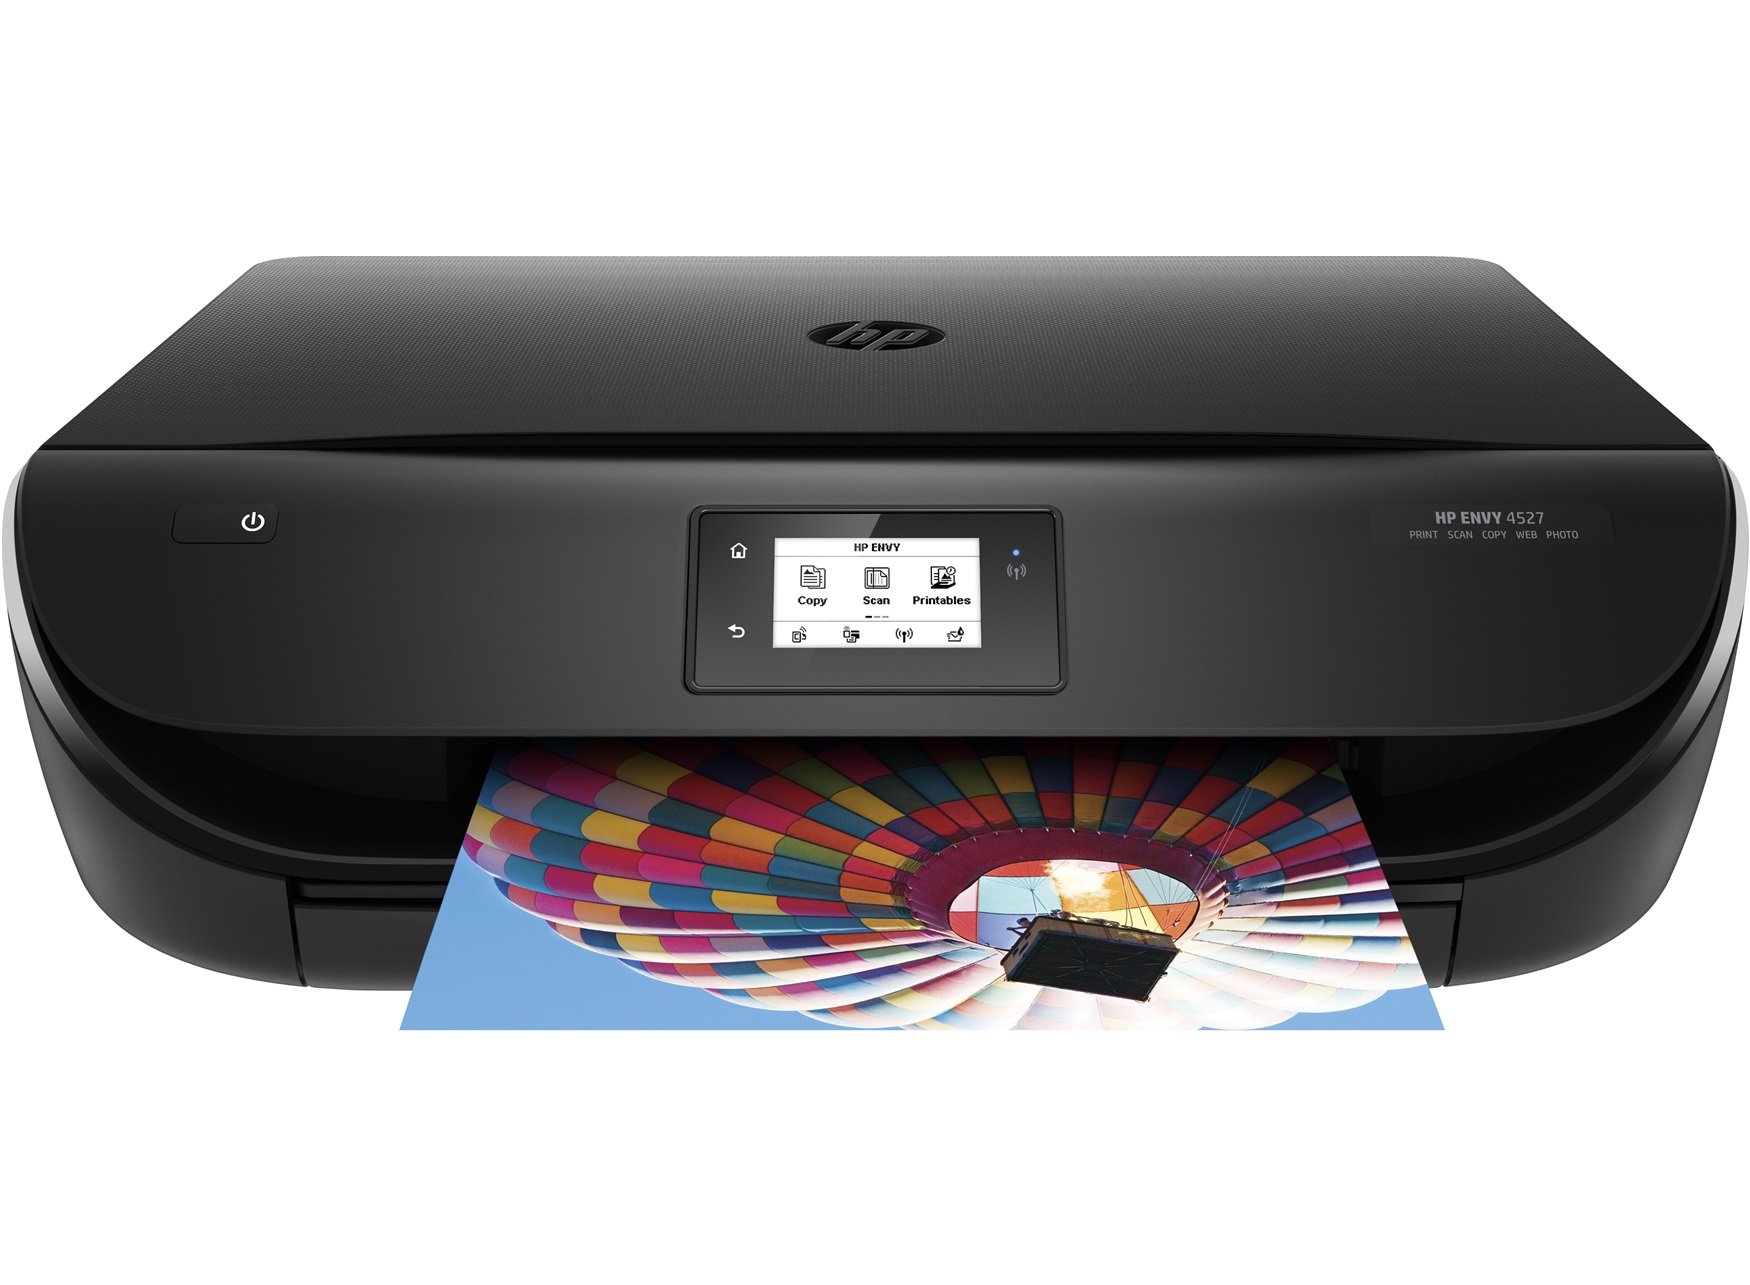 Hewlett Packard (HP) Envy 4525 Multifunktionsdrucker (Fotodrucker, Scanner, Kopierer,  Instant Ink ready, Airprint, ePrint, Duplex, WiFi Direct, 4800 x 1200 dpi) schwarz